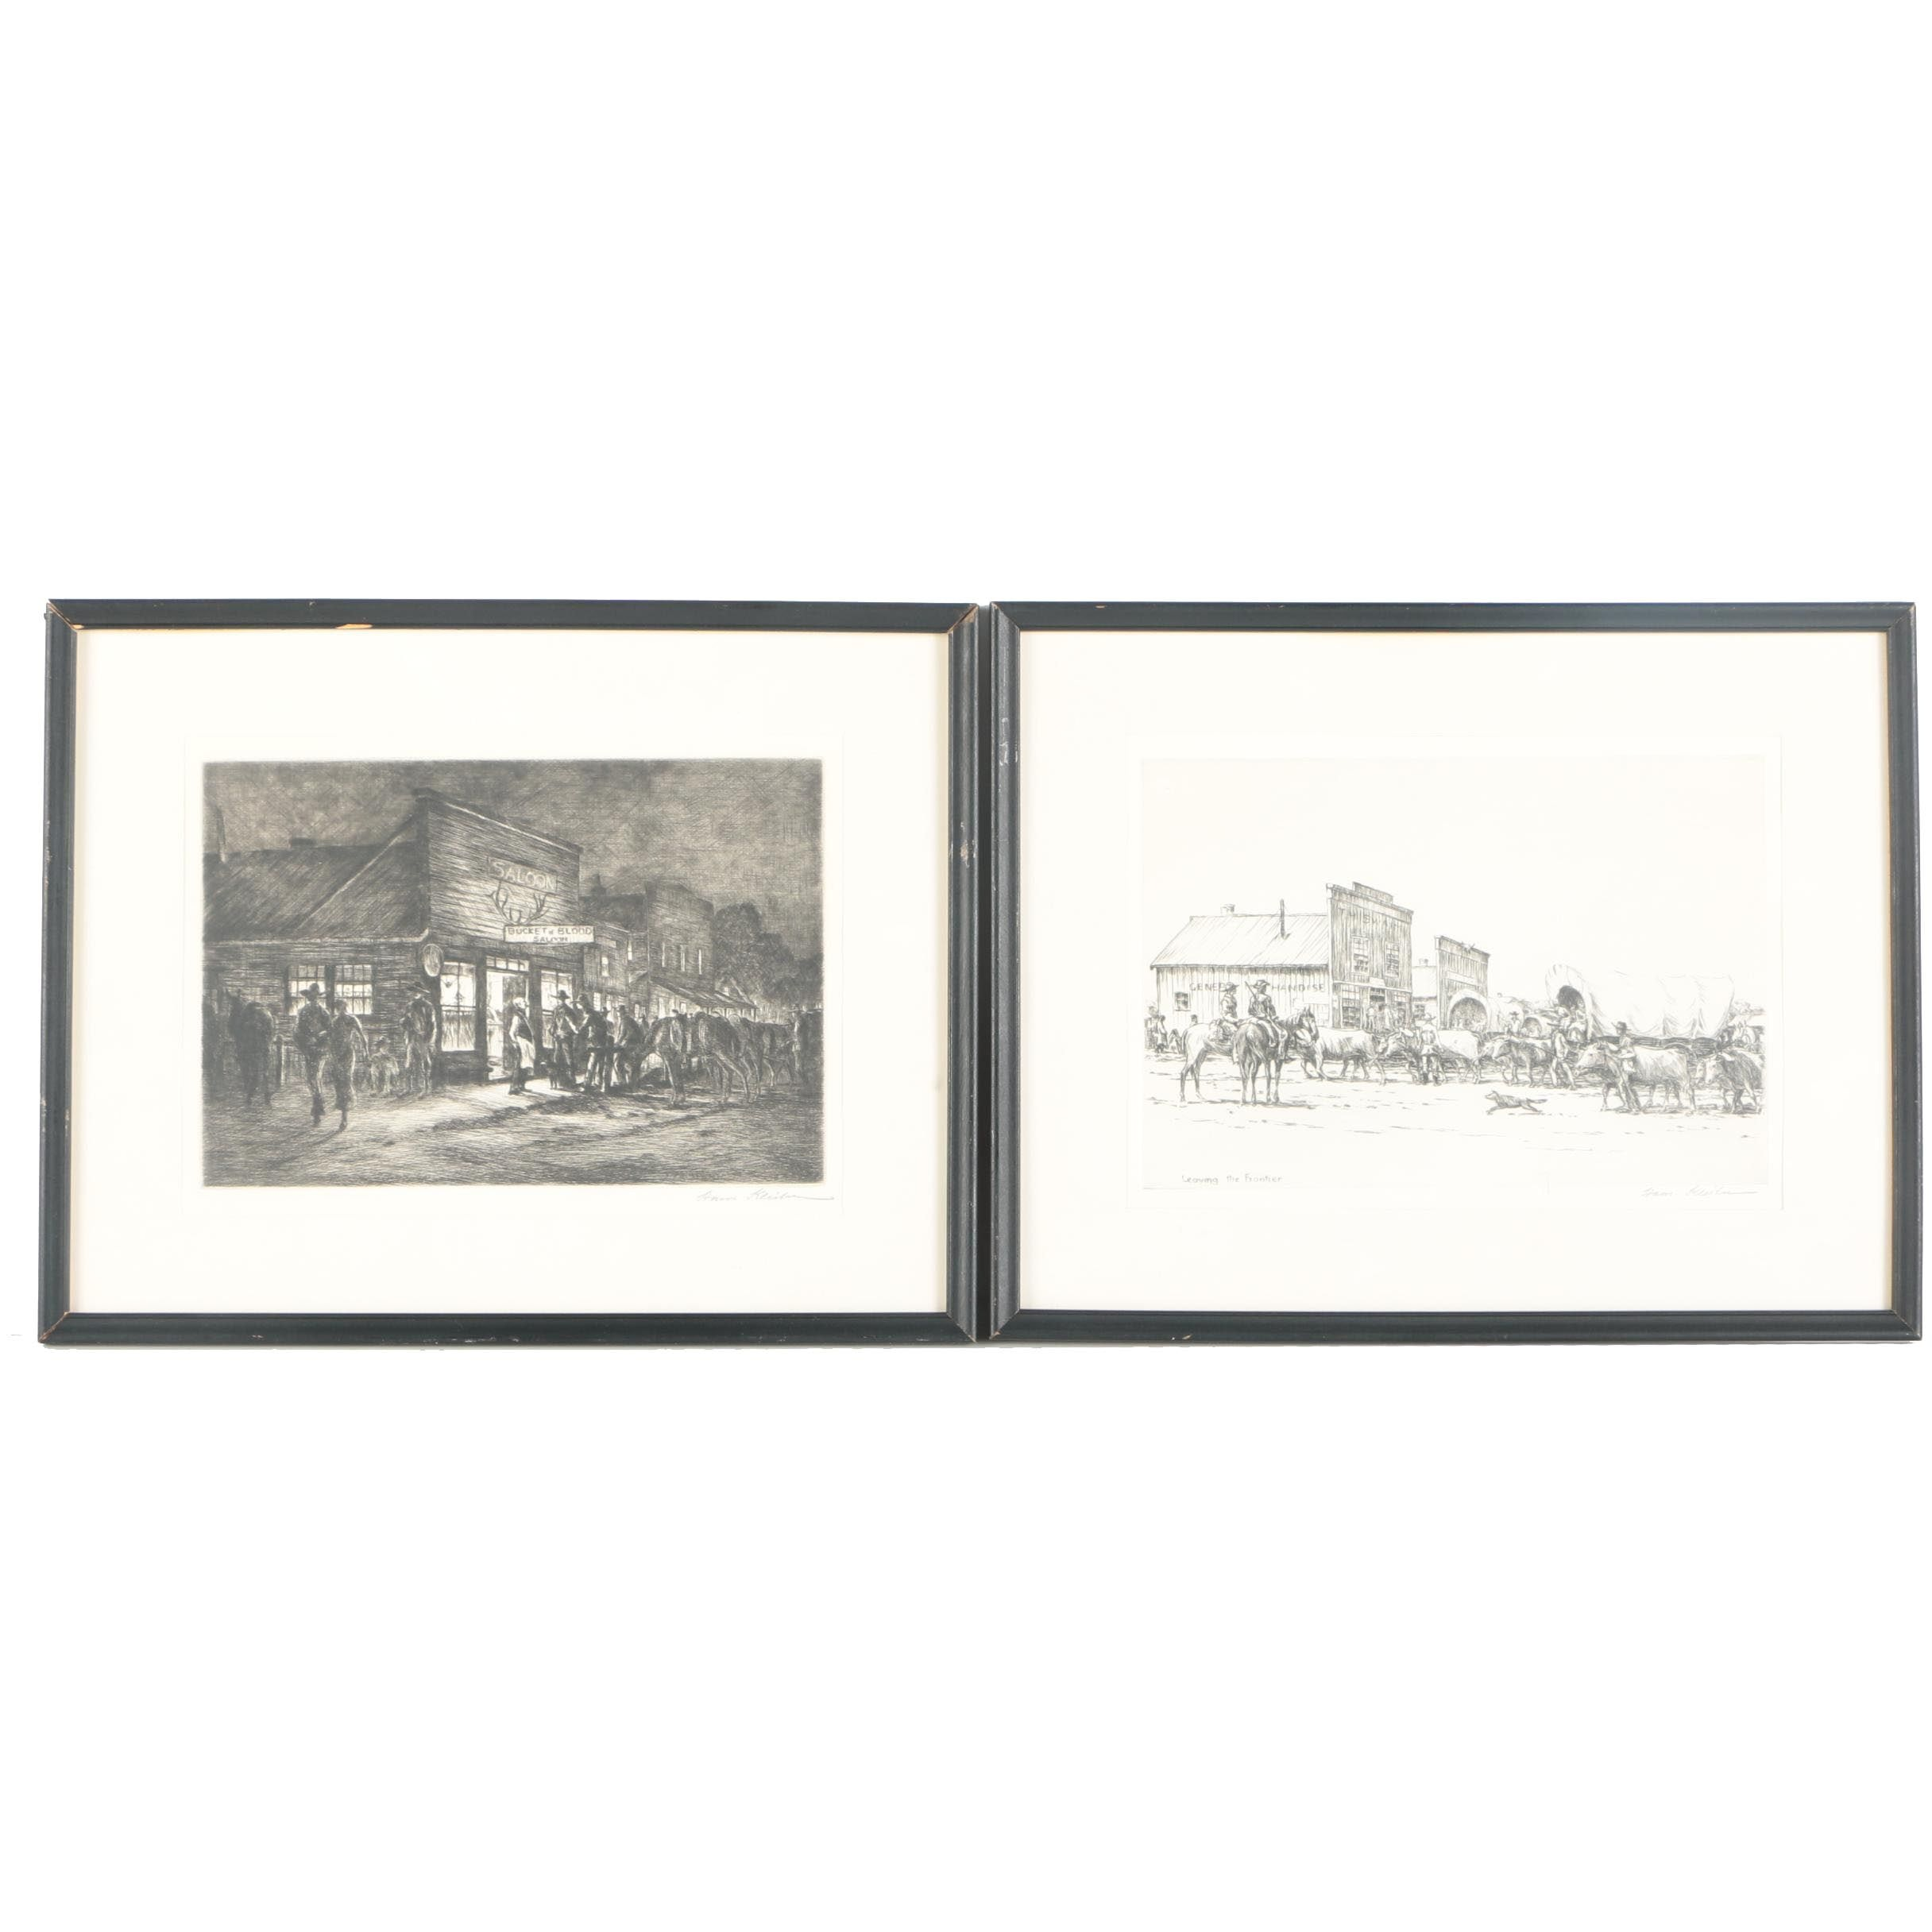 """Hans Kleiber Signed Etchings On Paper """"Bucket Of Blood Saloon"""" and """"Leaving the Frontier"""""""